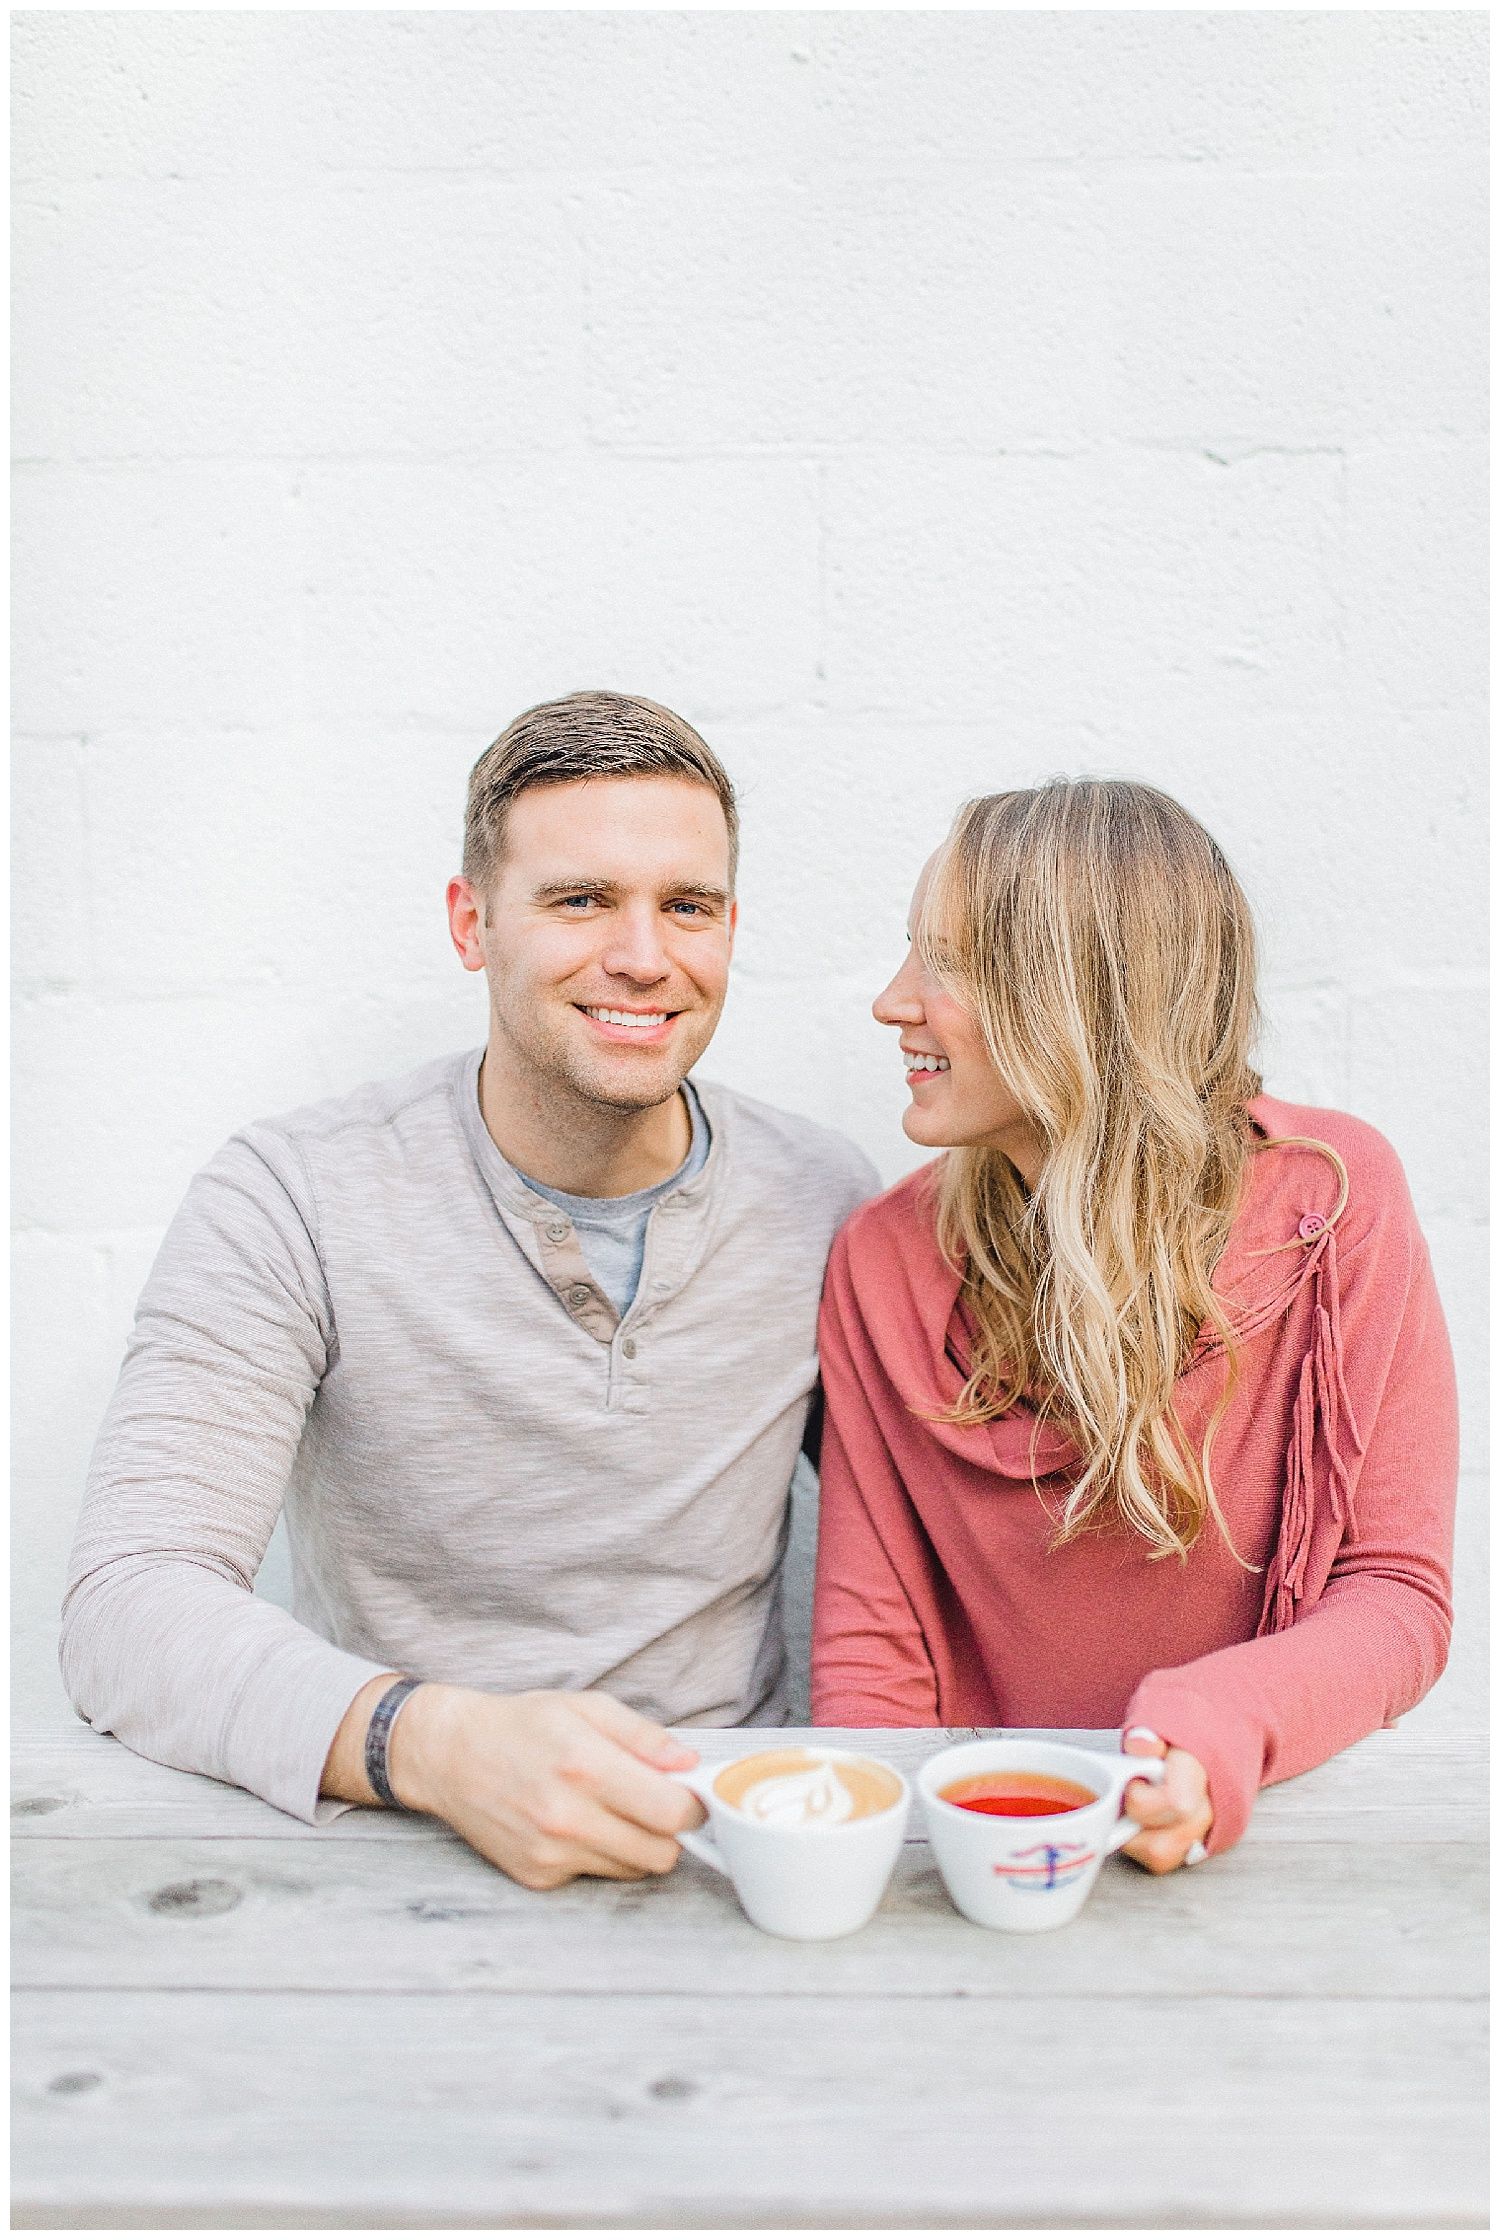 ERC_0902_Downtown Nashville Engagement Session at Barista Parlor | Emma Rose Company Wedding Photographer | Outfit Inspiration for Engagement Session | Kindred Light and Airy Photographer.jpg